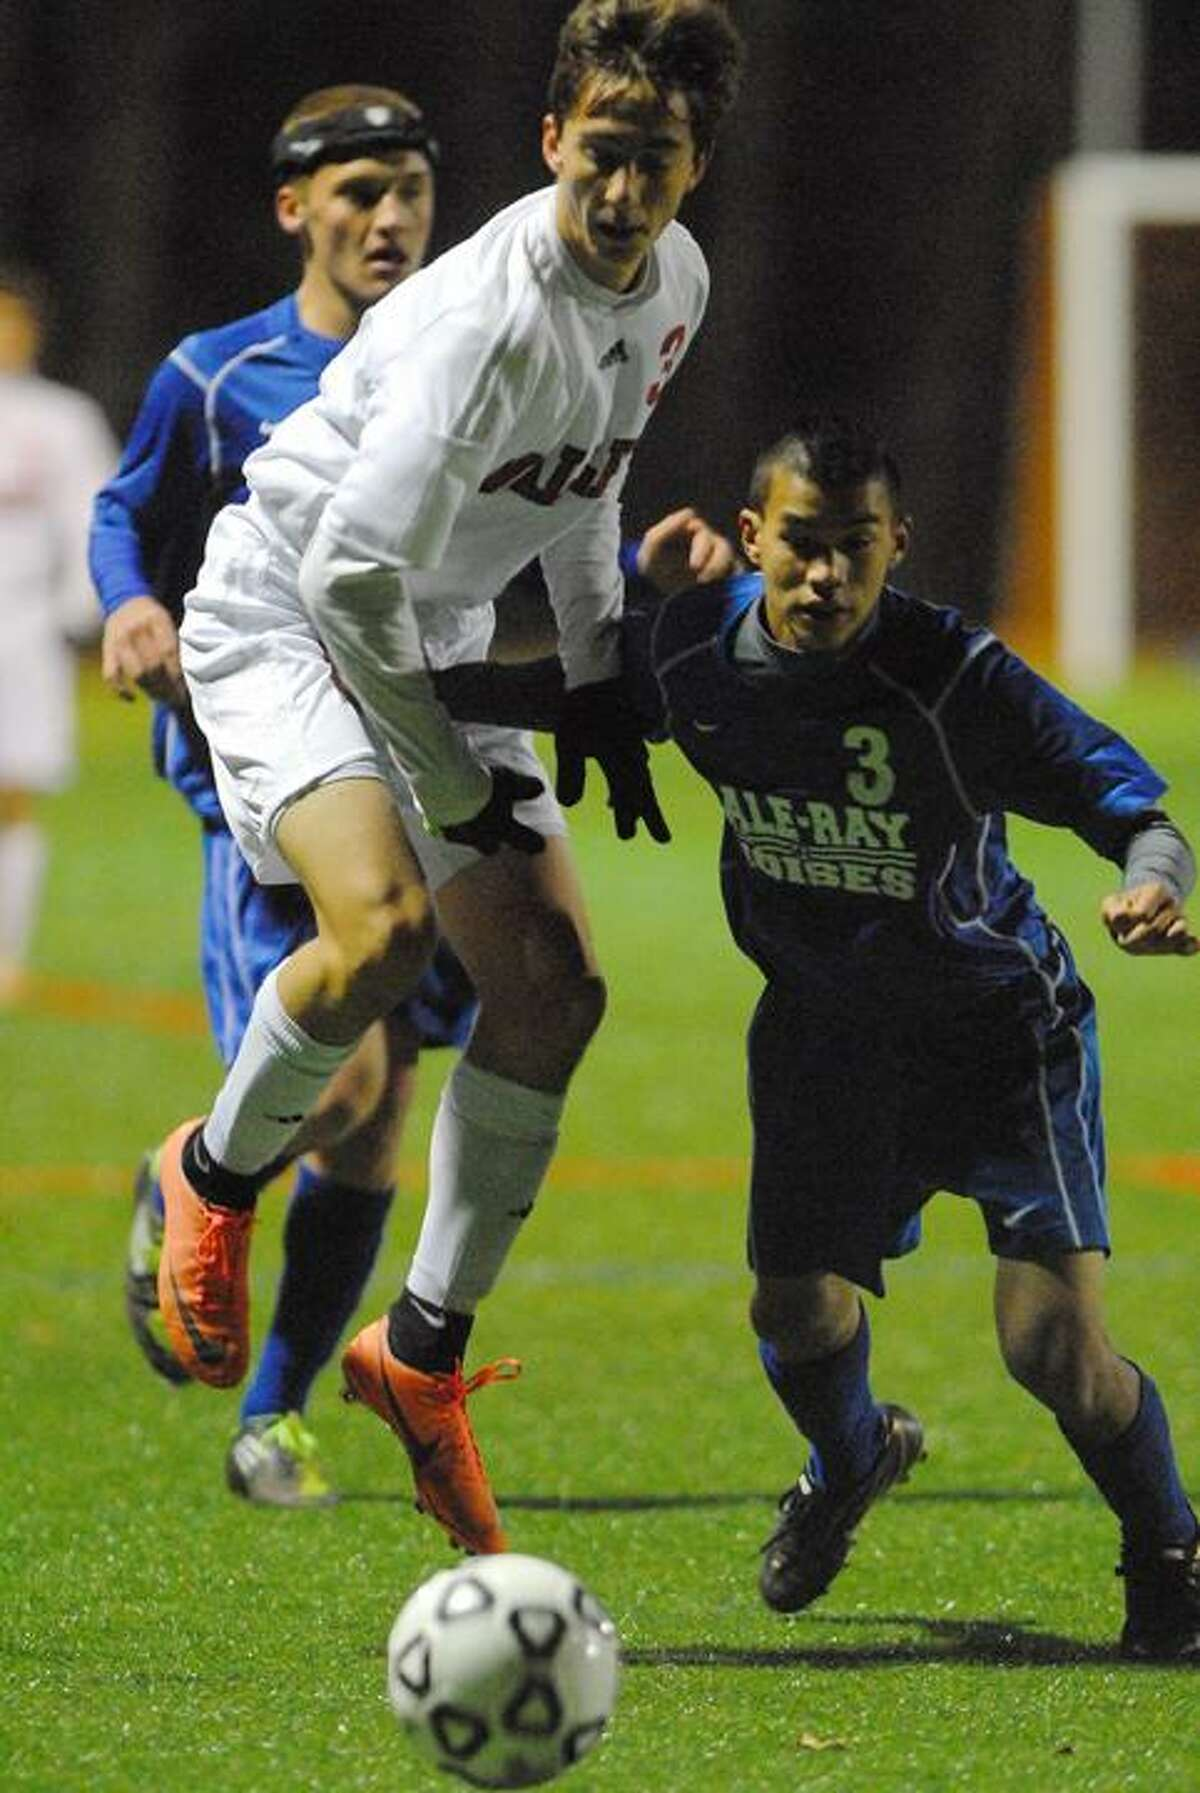 Catherine Avalone/The Middletown PressValley Regional senior Oskar Partyka and Hale Ray's Erick Tung battle for a loose ball in the first half of the Shoreline Championship match at Indian River Athletic Complex in Clinton Monday night.